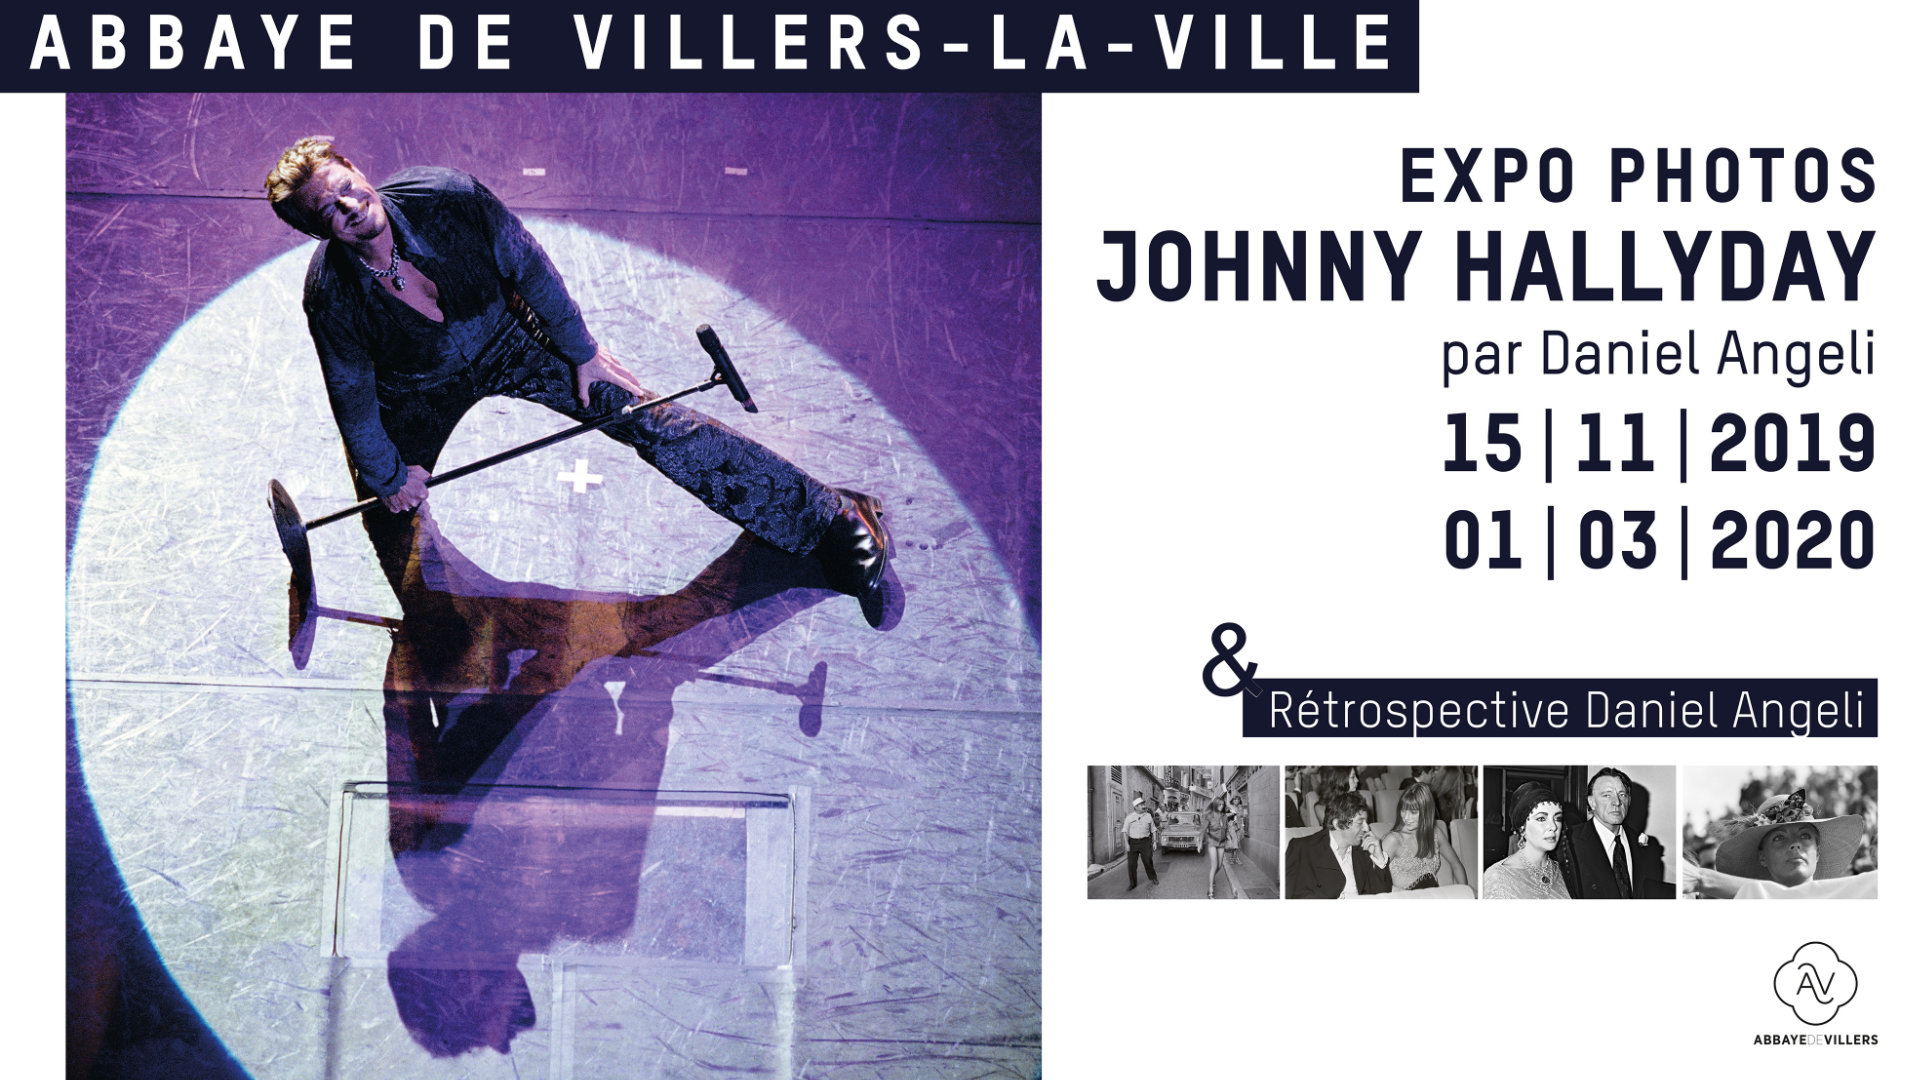 Expo photo Johnny Hallyday